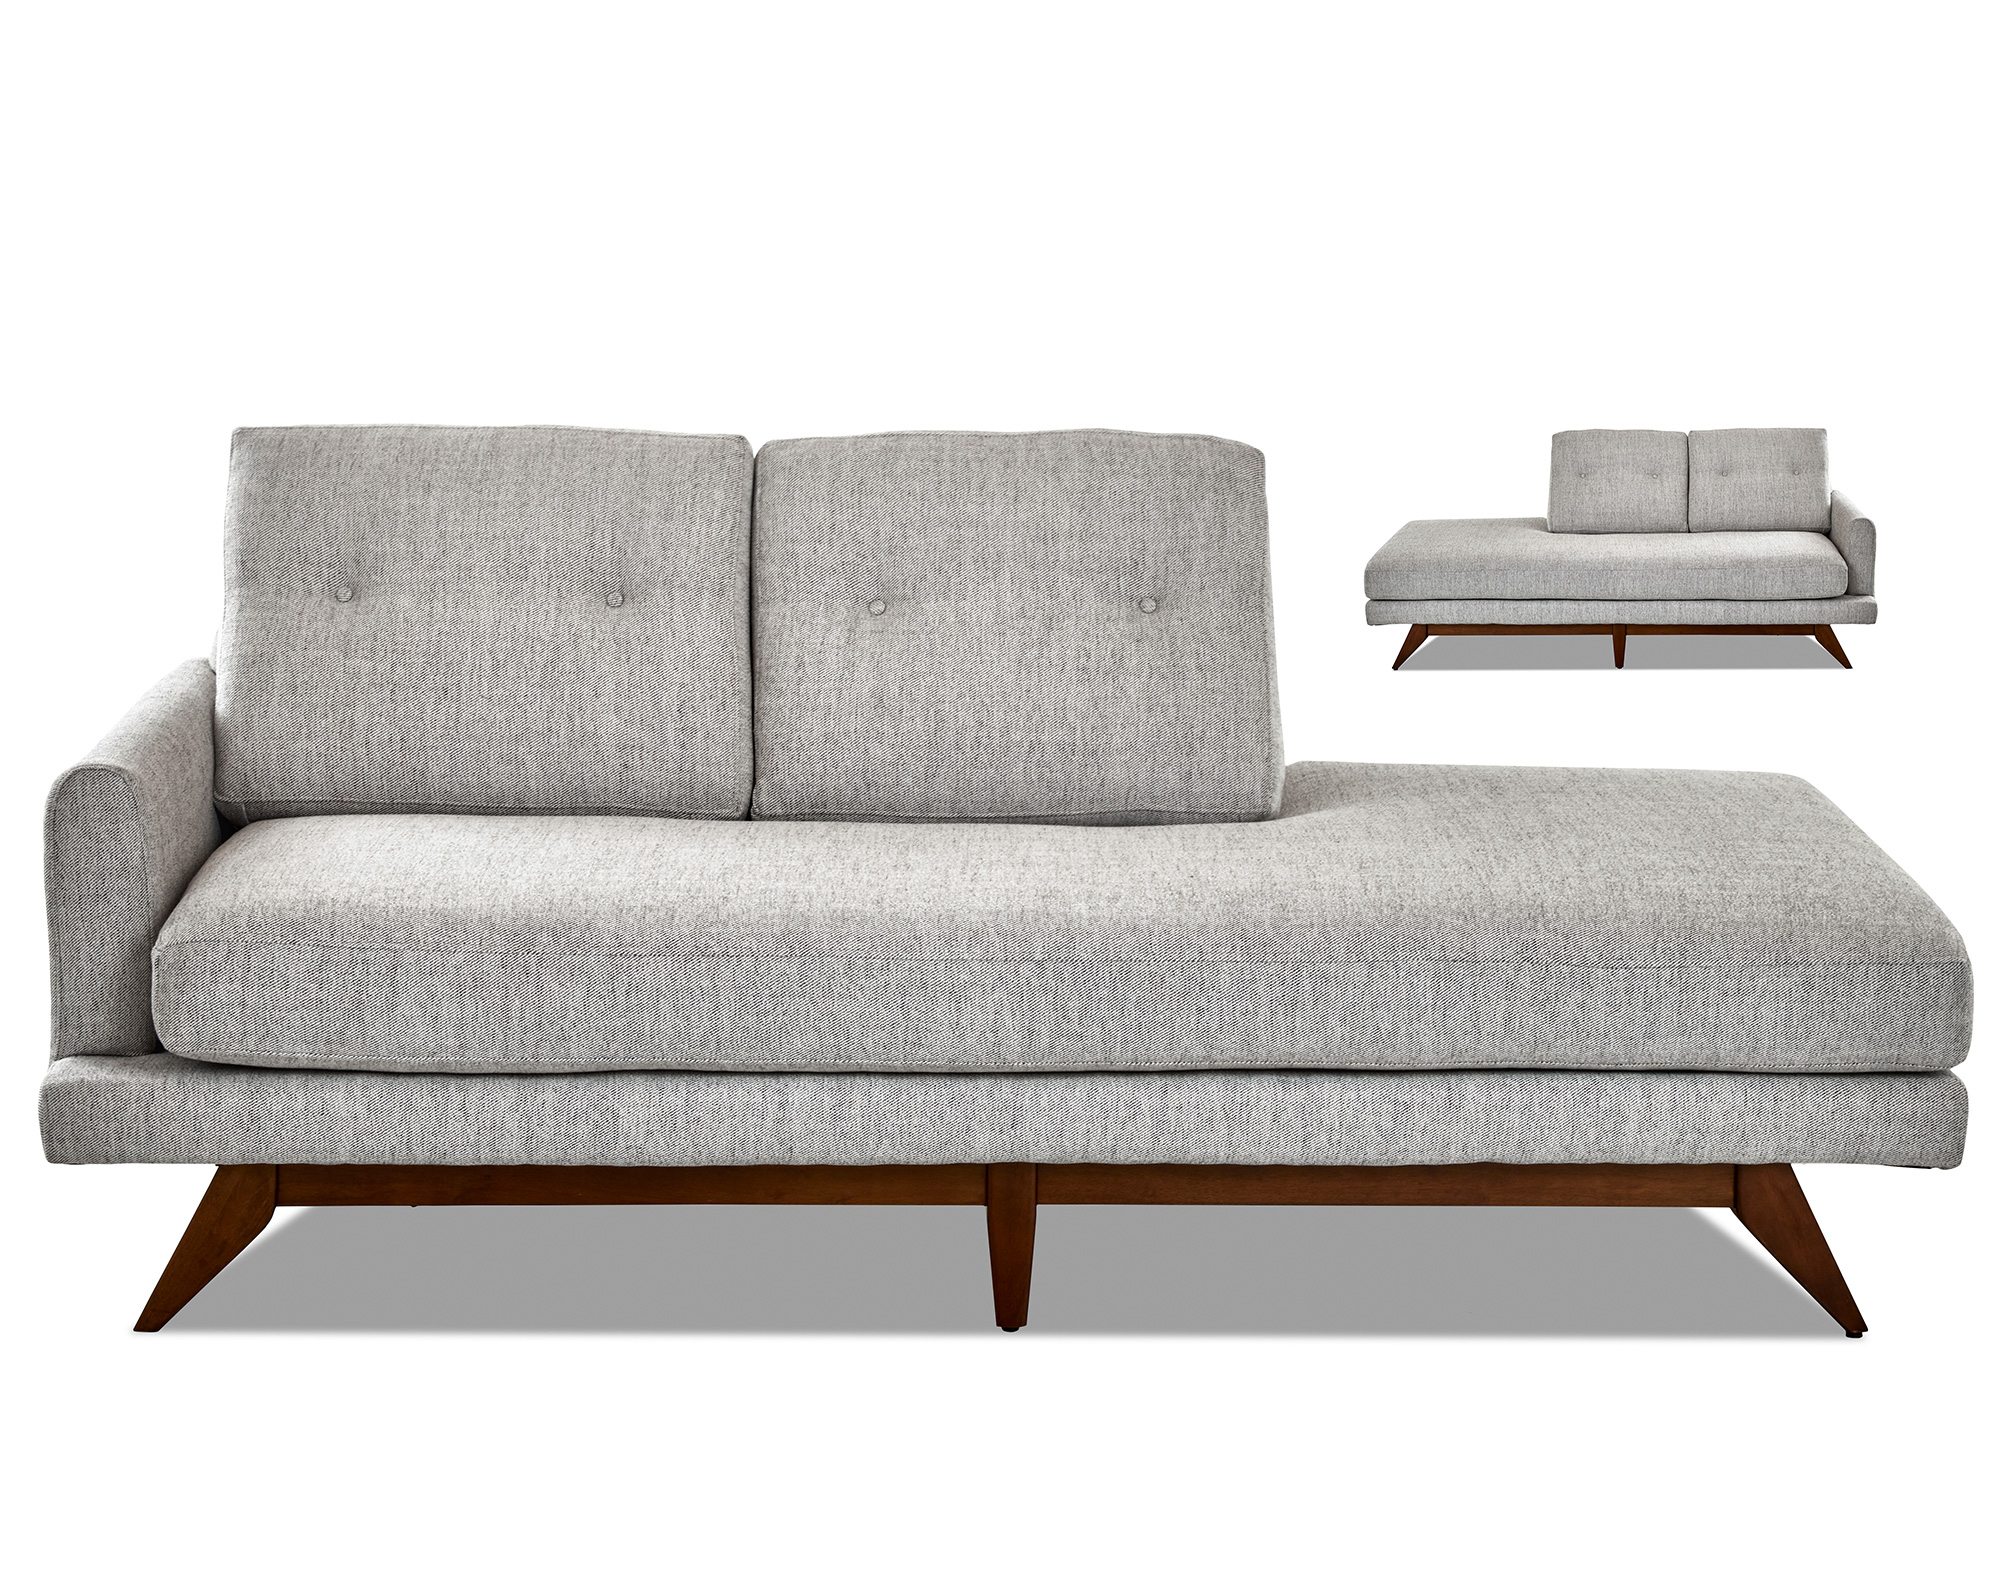 Surprising Kendal Wood Base Chaise Left Or Right Side Sofas And Beatyapartments Chair Design Images Beatyapartmentscom